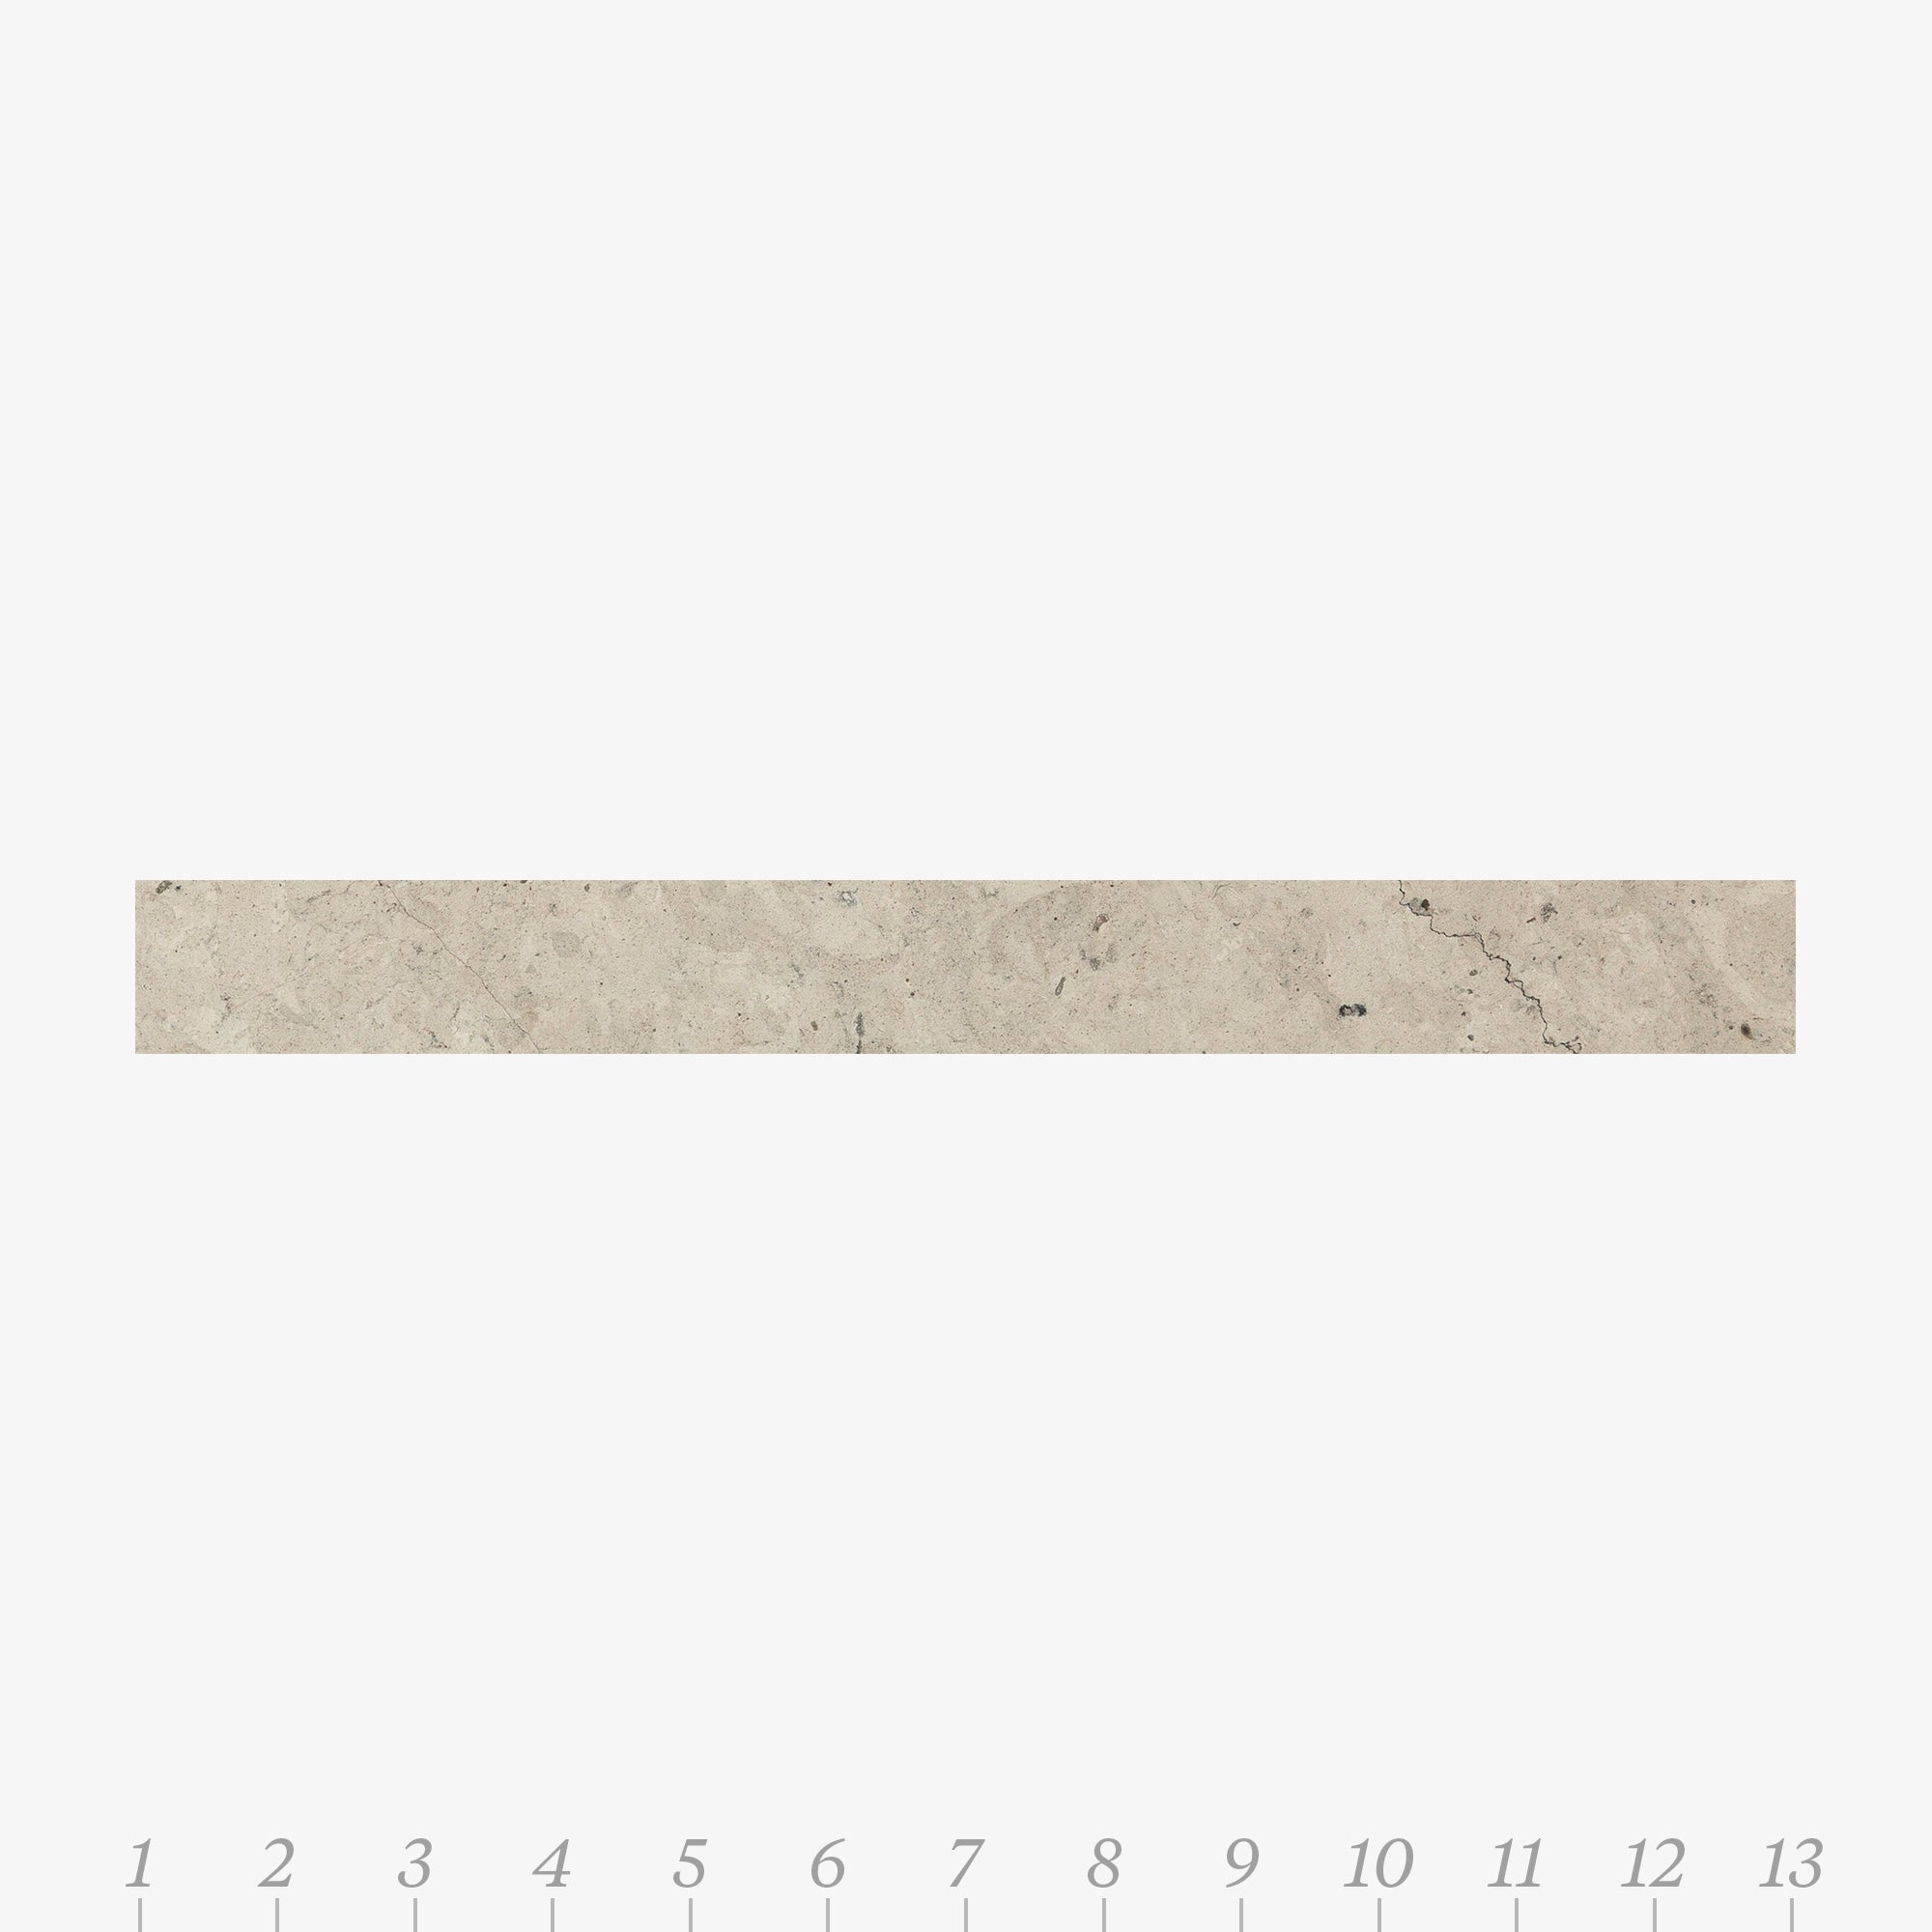 Chelsea 2 Smoke Limestone Swatch Card  Honed Samples Liner product photo